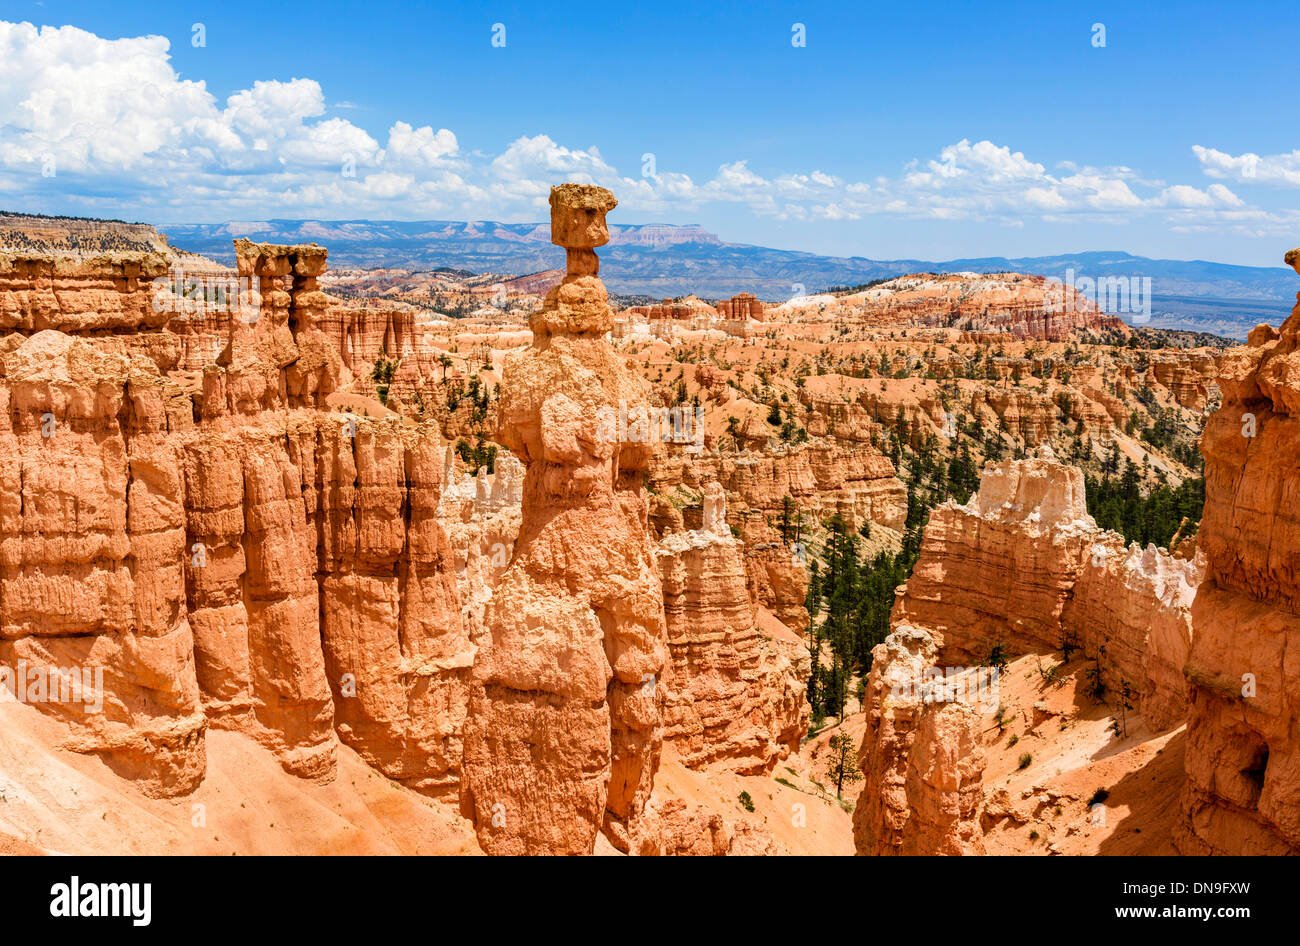 Thors Hammer monolito en el Navajo Loop Trail, Sunset Point, Bryce Anfiteatro, Bryce Canyon National Park, Utah, EE.UU. Imagen De Stock